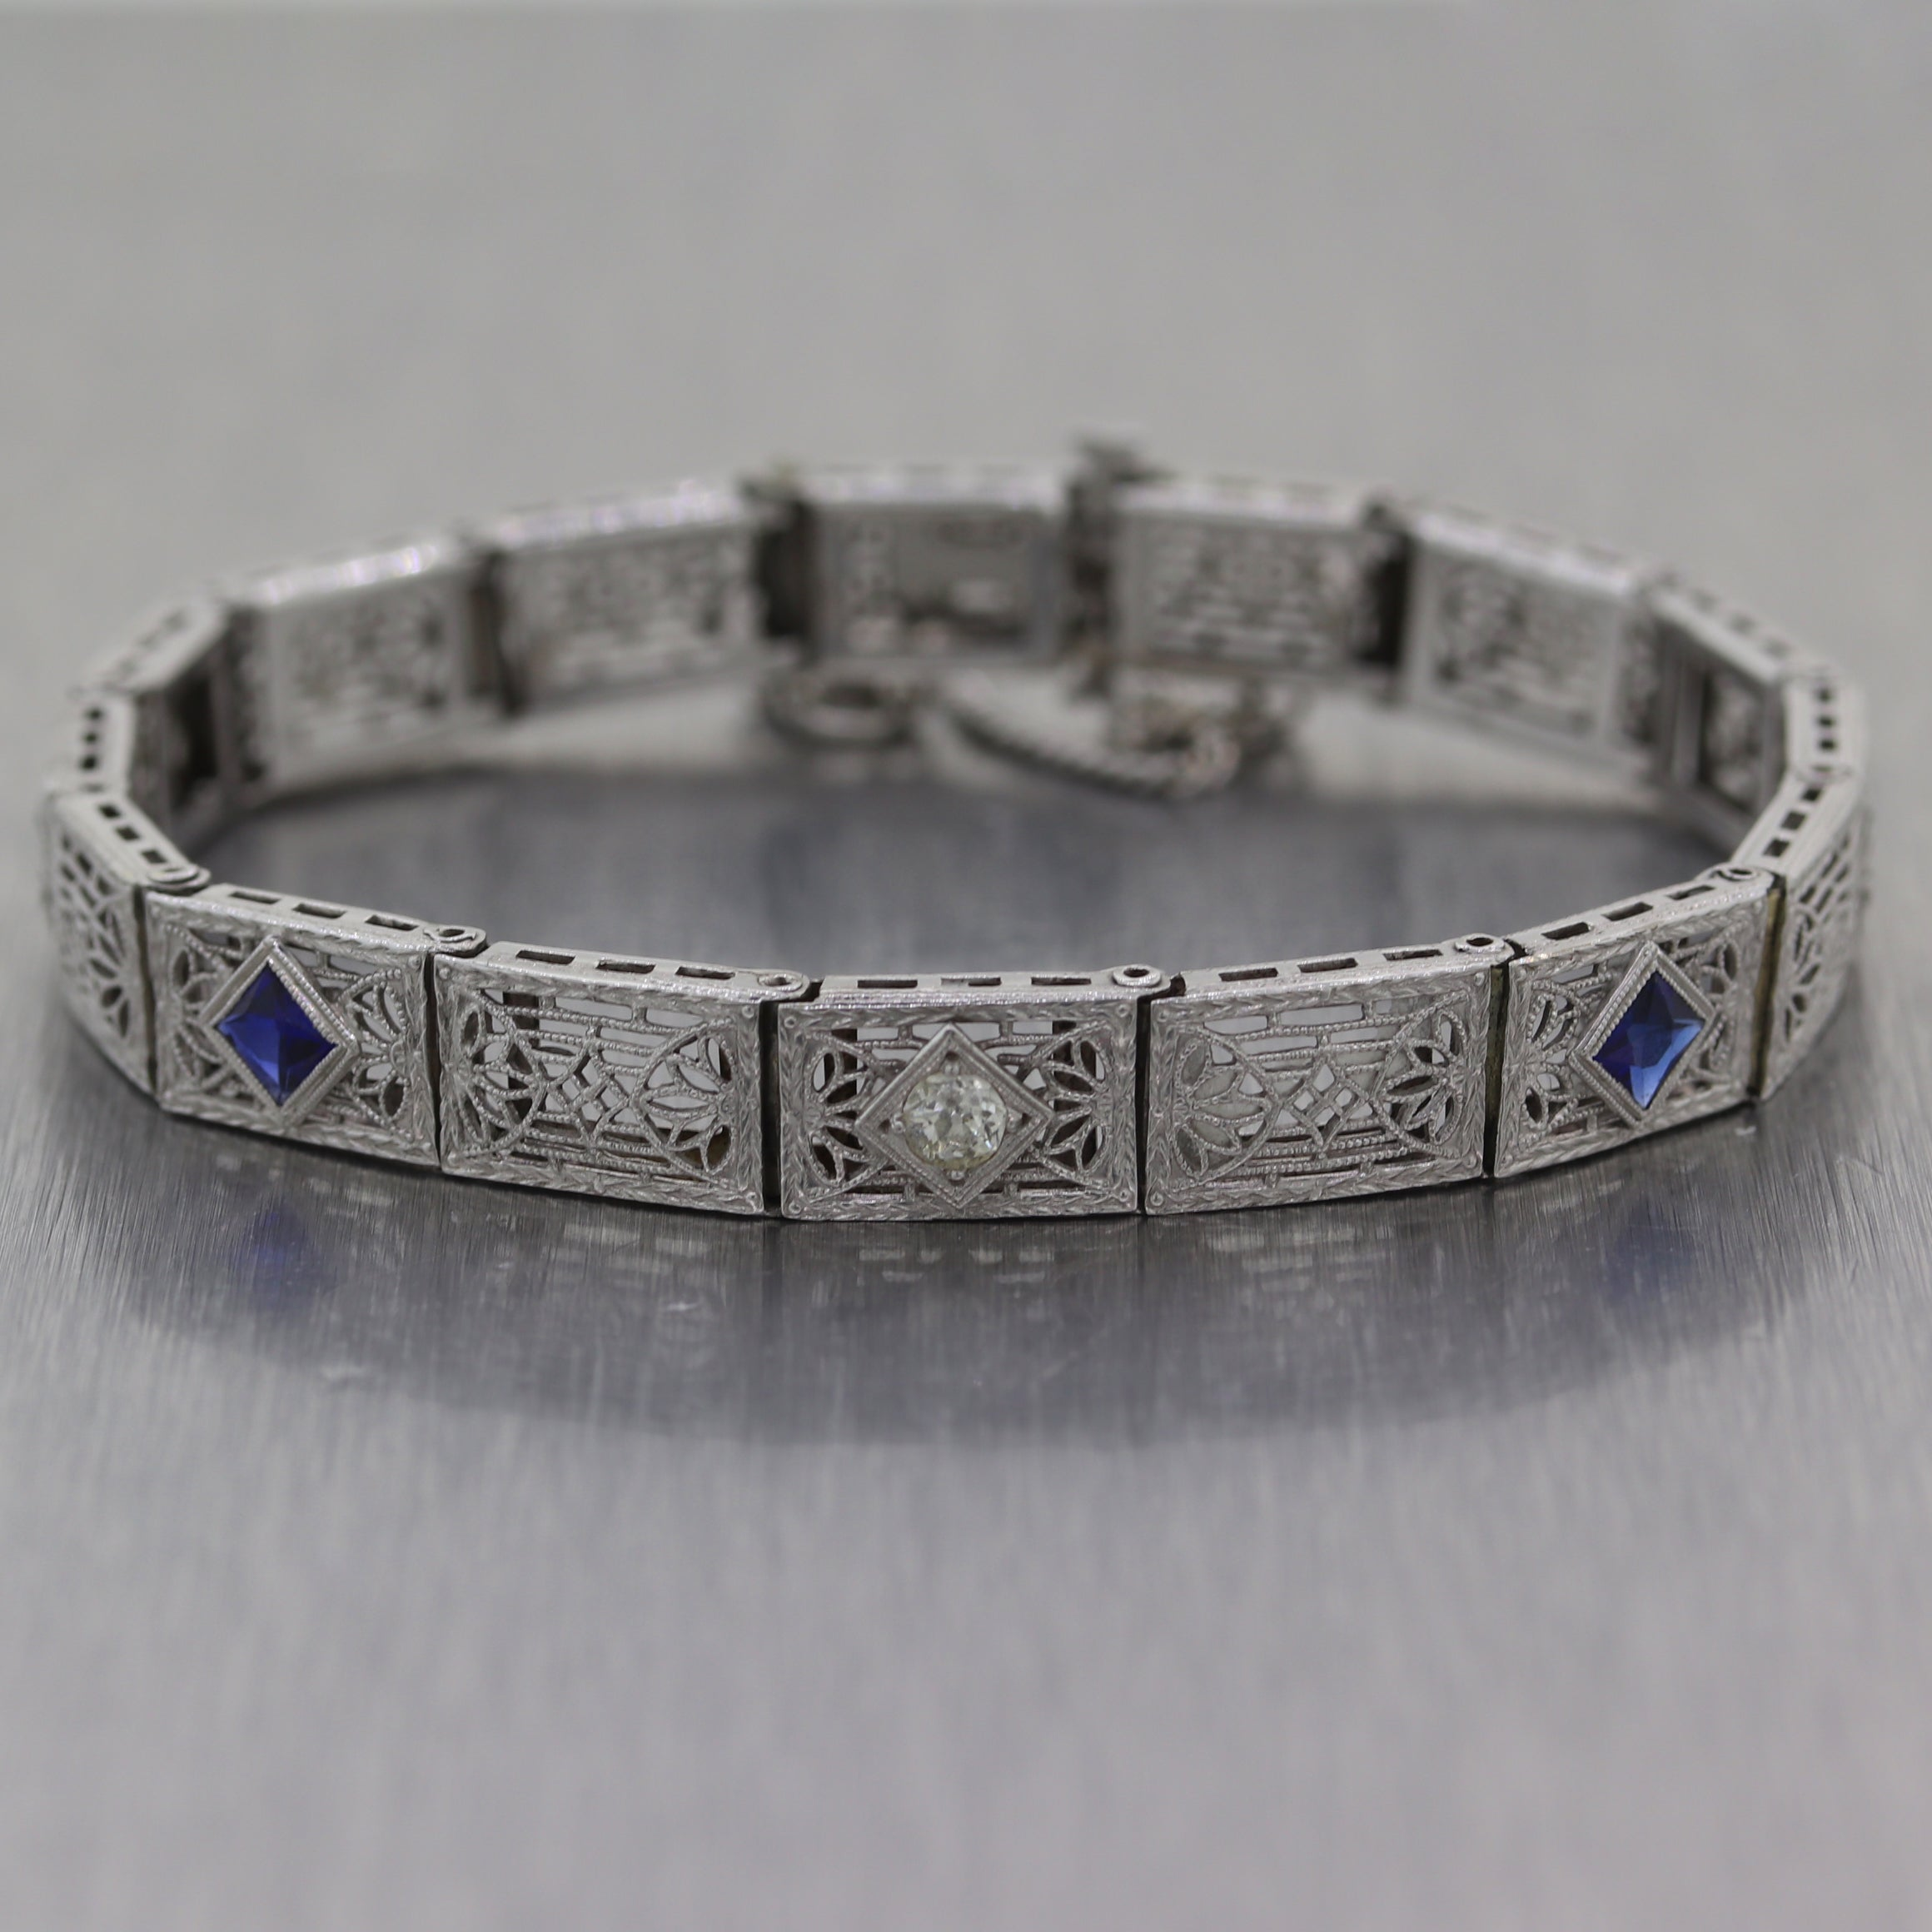 1930 Antique Art Deco 14k White Gold 0.55ct Sapphire & Diamond Filigree Bracelet